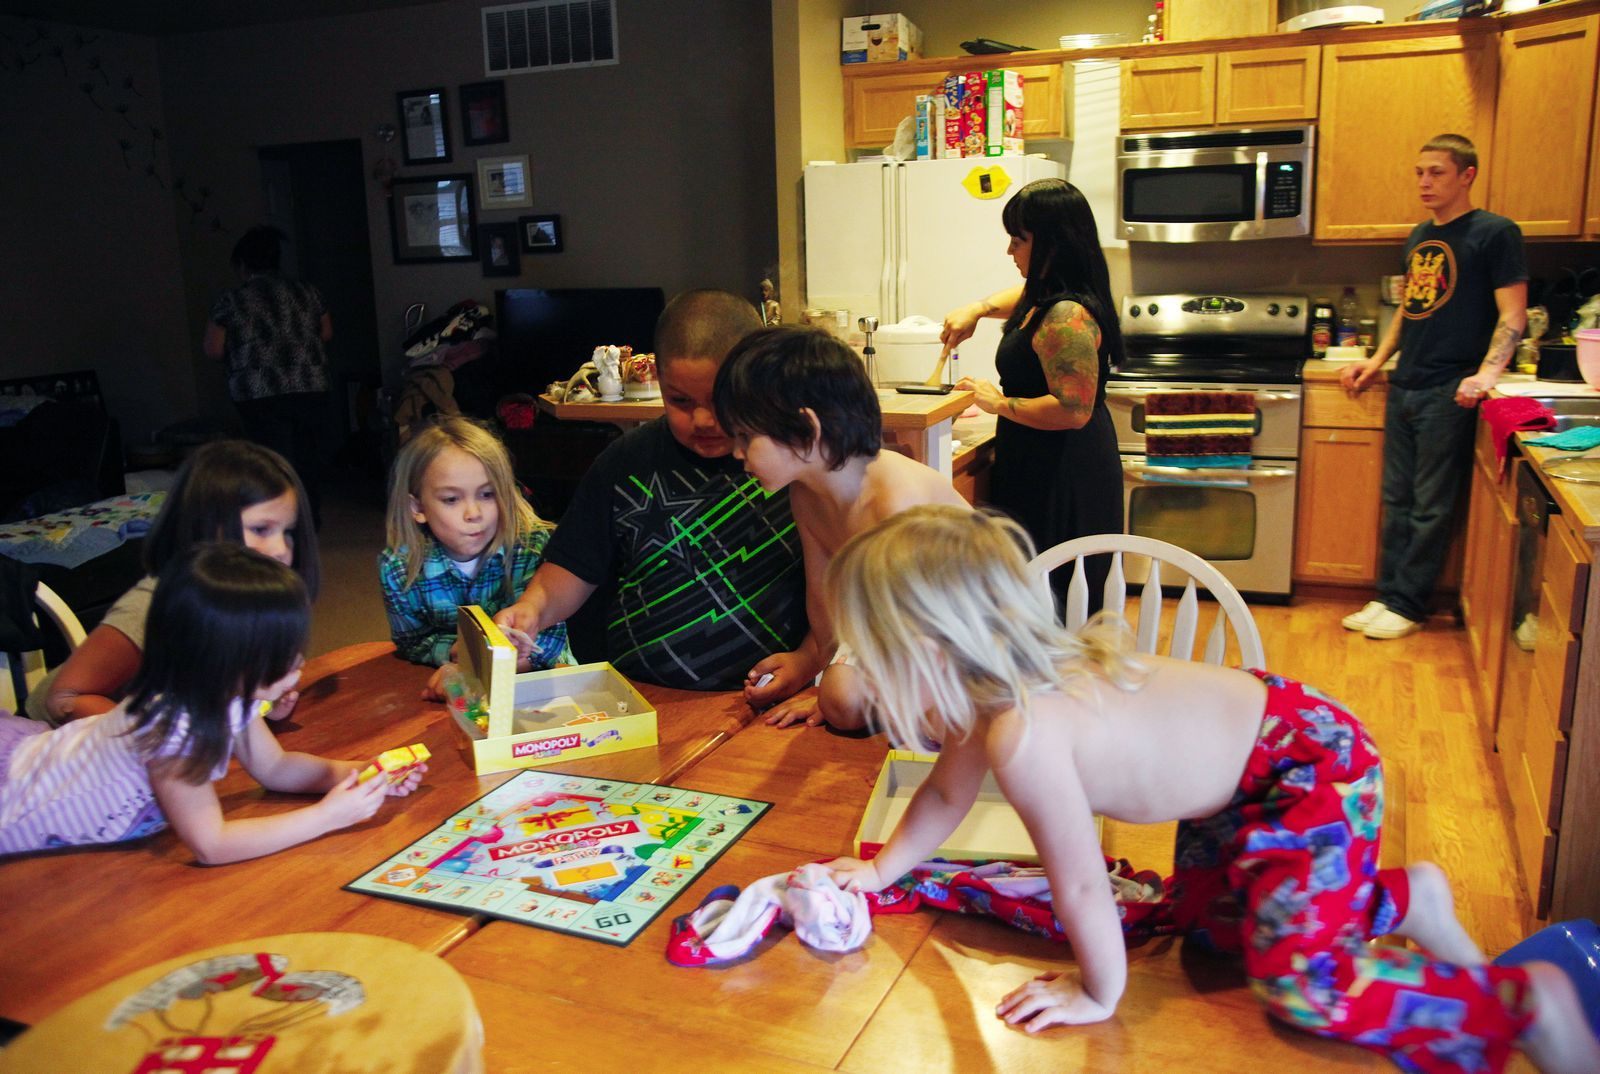 Genna Martin / The HeraldFrom left, Katie Hots, 4; Calista Weiser, 5; KC Hots, 7; Irwin Weiser, 8; Kane Hots, 5; and Aloisius Williams, 2, play Monopoly as Natasha Gobin and her spouse, Thomas Williams, make dinner at their home in Tulalip. Gobin, who teaches Lushootseed language classes, asks her children, KC, Kane, Katie and Aloisius, to count in Lushootseed as they play the game.